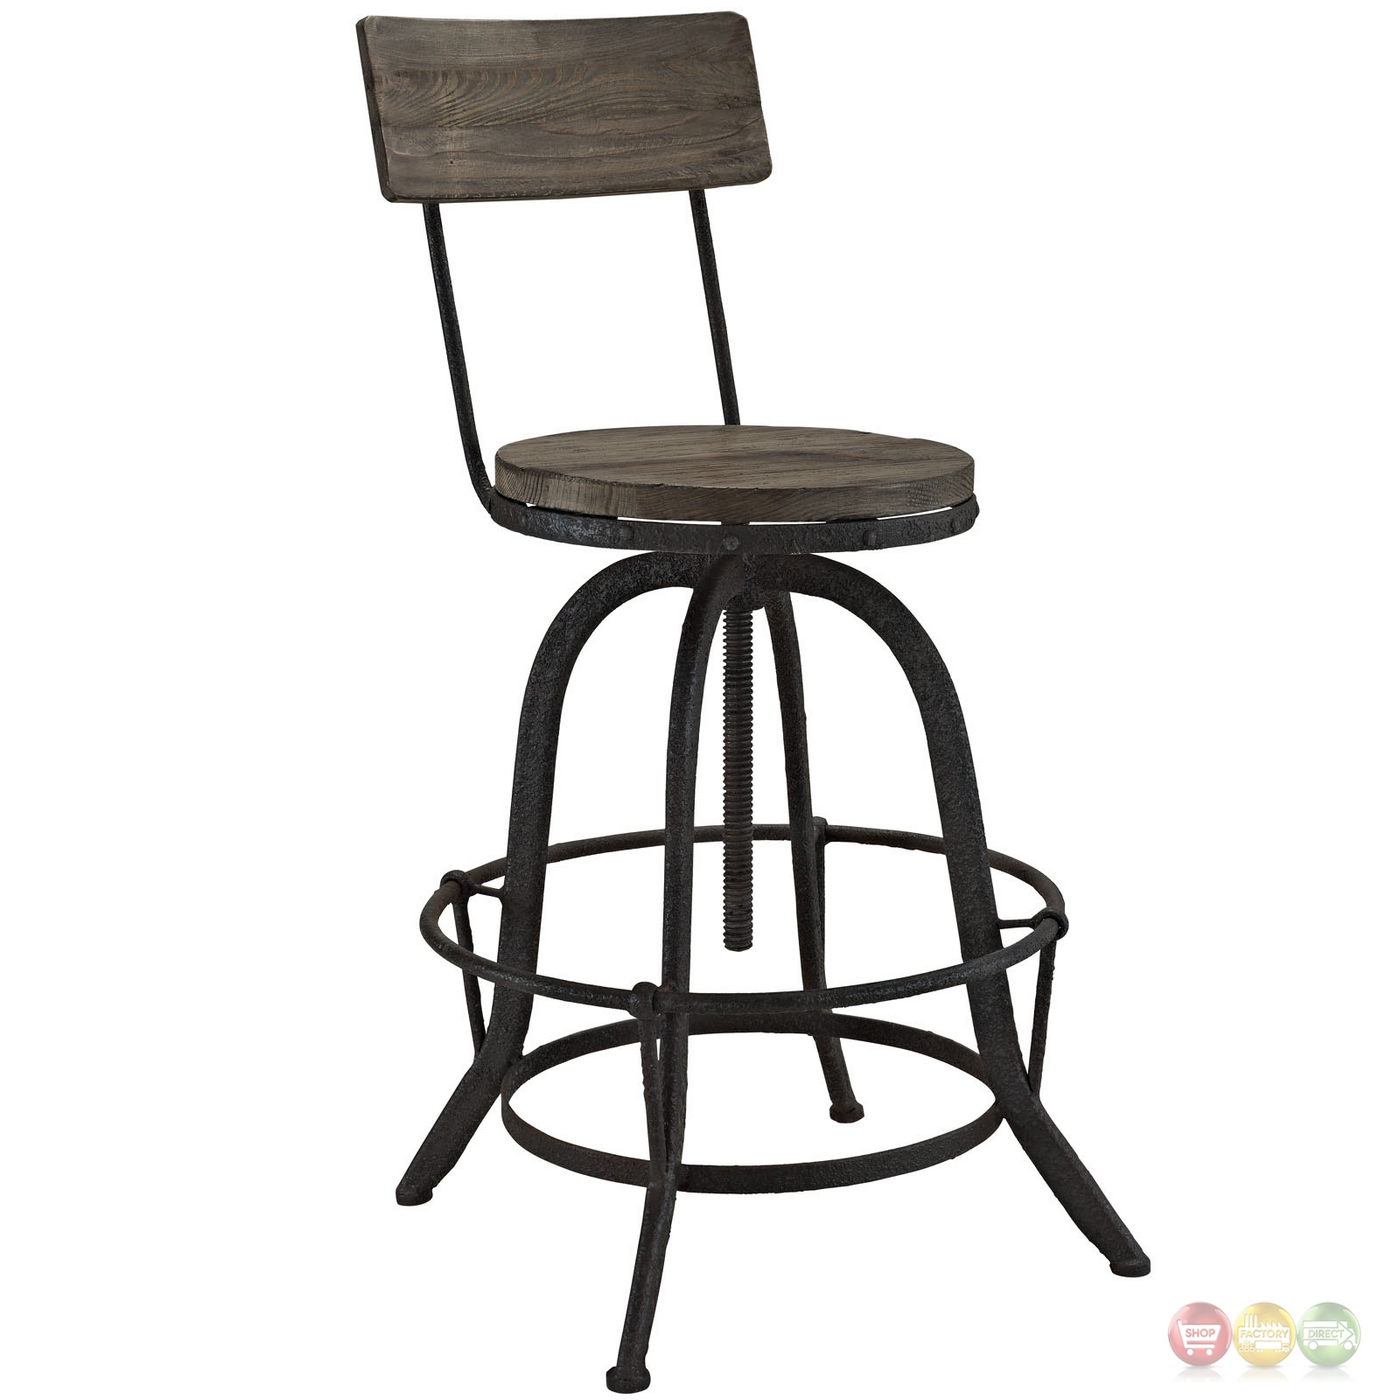 Industrial Bar Stools With Backs Set Of 2 Procure Industrial Bar Stool W Wood Seat Backs